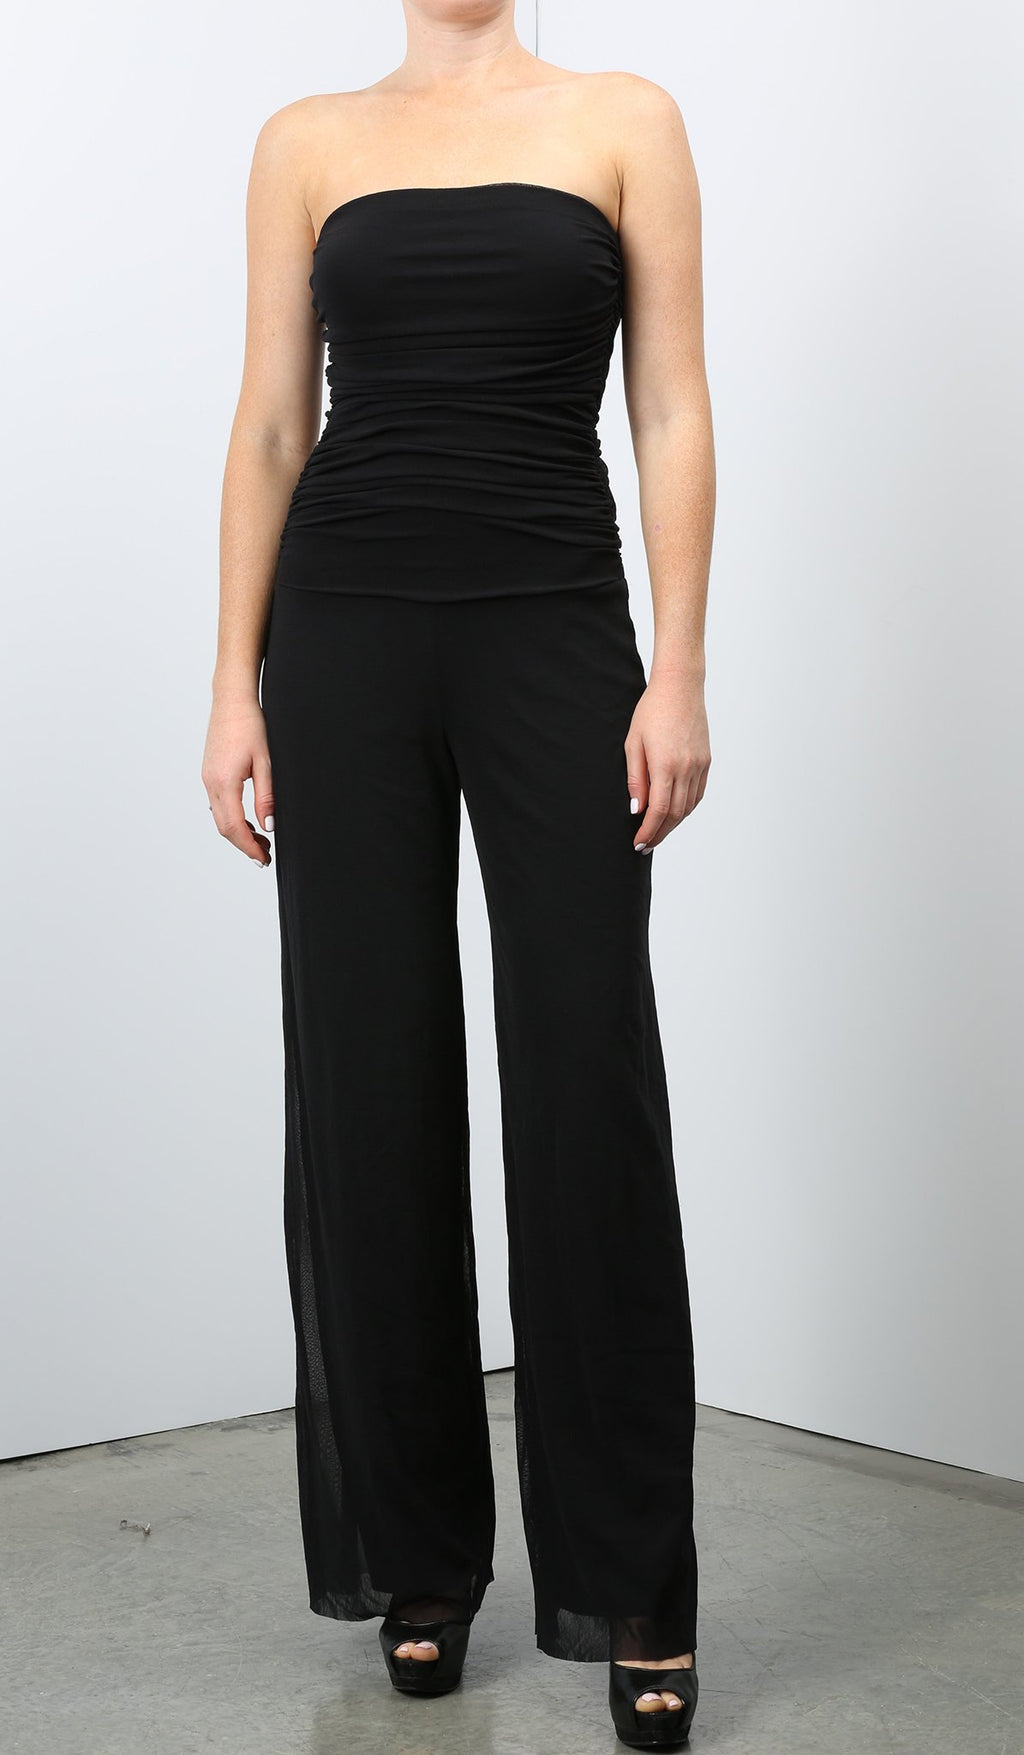 Strapless black mesh jumpsuit